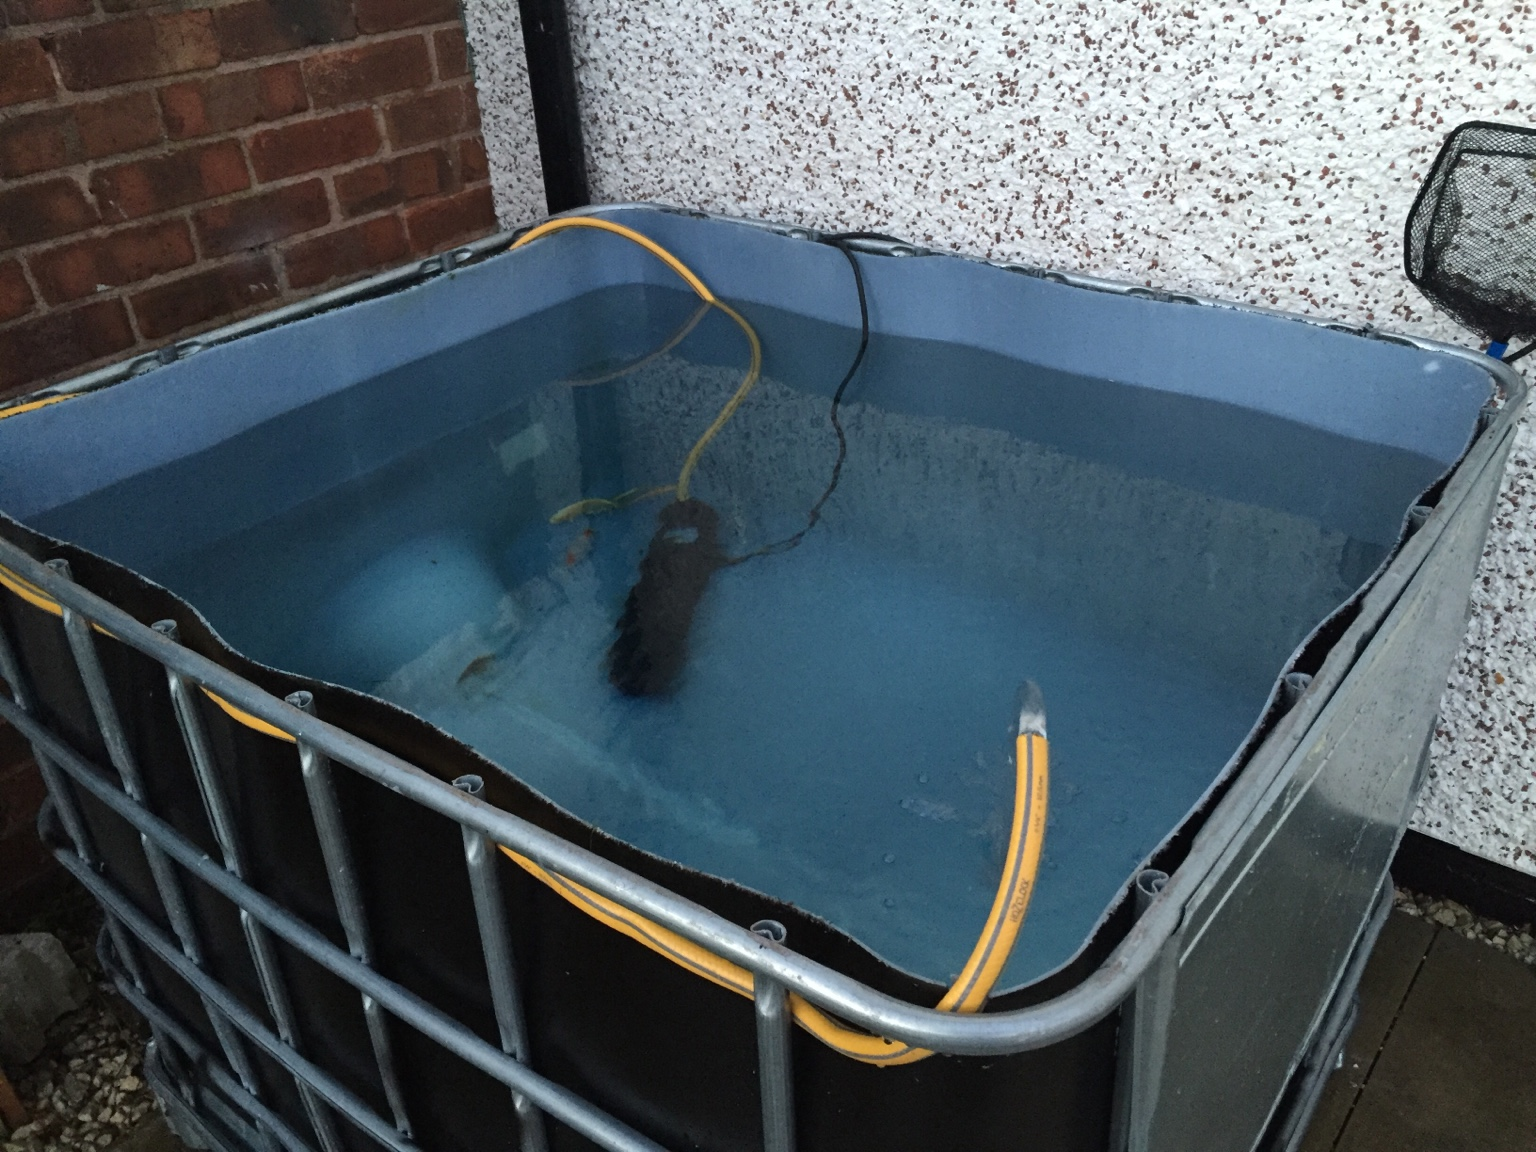 Ibc pond grow build new to fish keeping for Fish pond filter setup